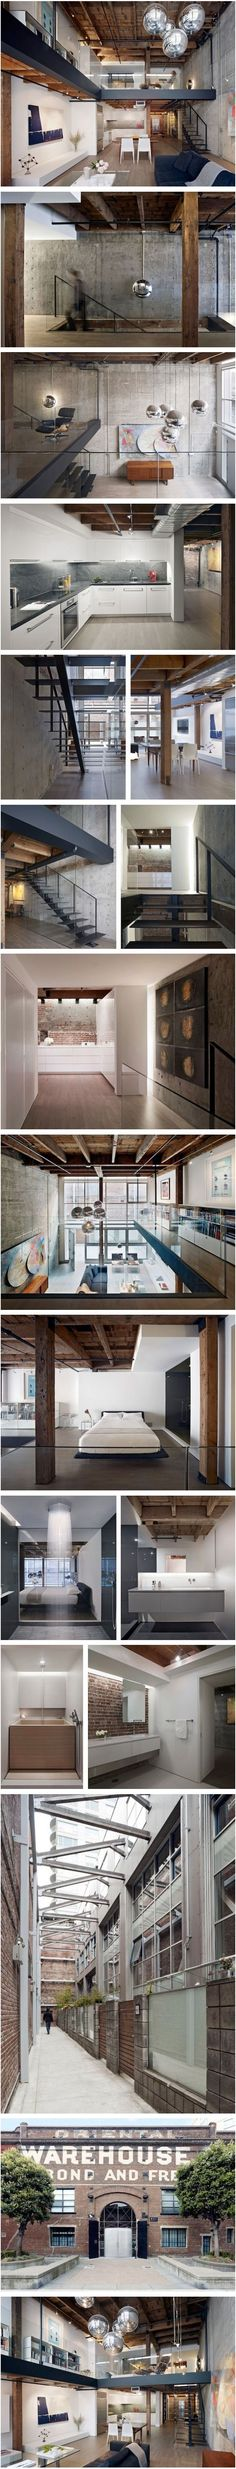 Interior design and architecture for a loft unit in San Francisco's Oriental Warehouse, Building by Edmonds + Lee Architects Lofts, Warehouse Living, Warehouse Loft, Warehouse Design, Architecture Design, Building Architecture, Industrial House, Industrial Style, Industrial Interiors